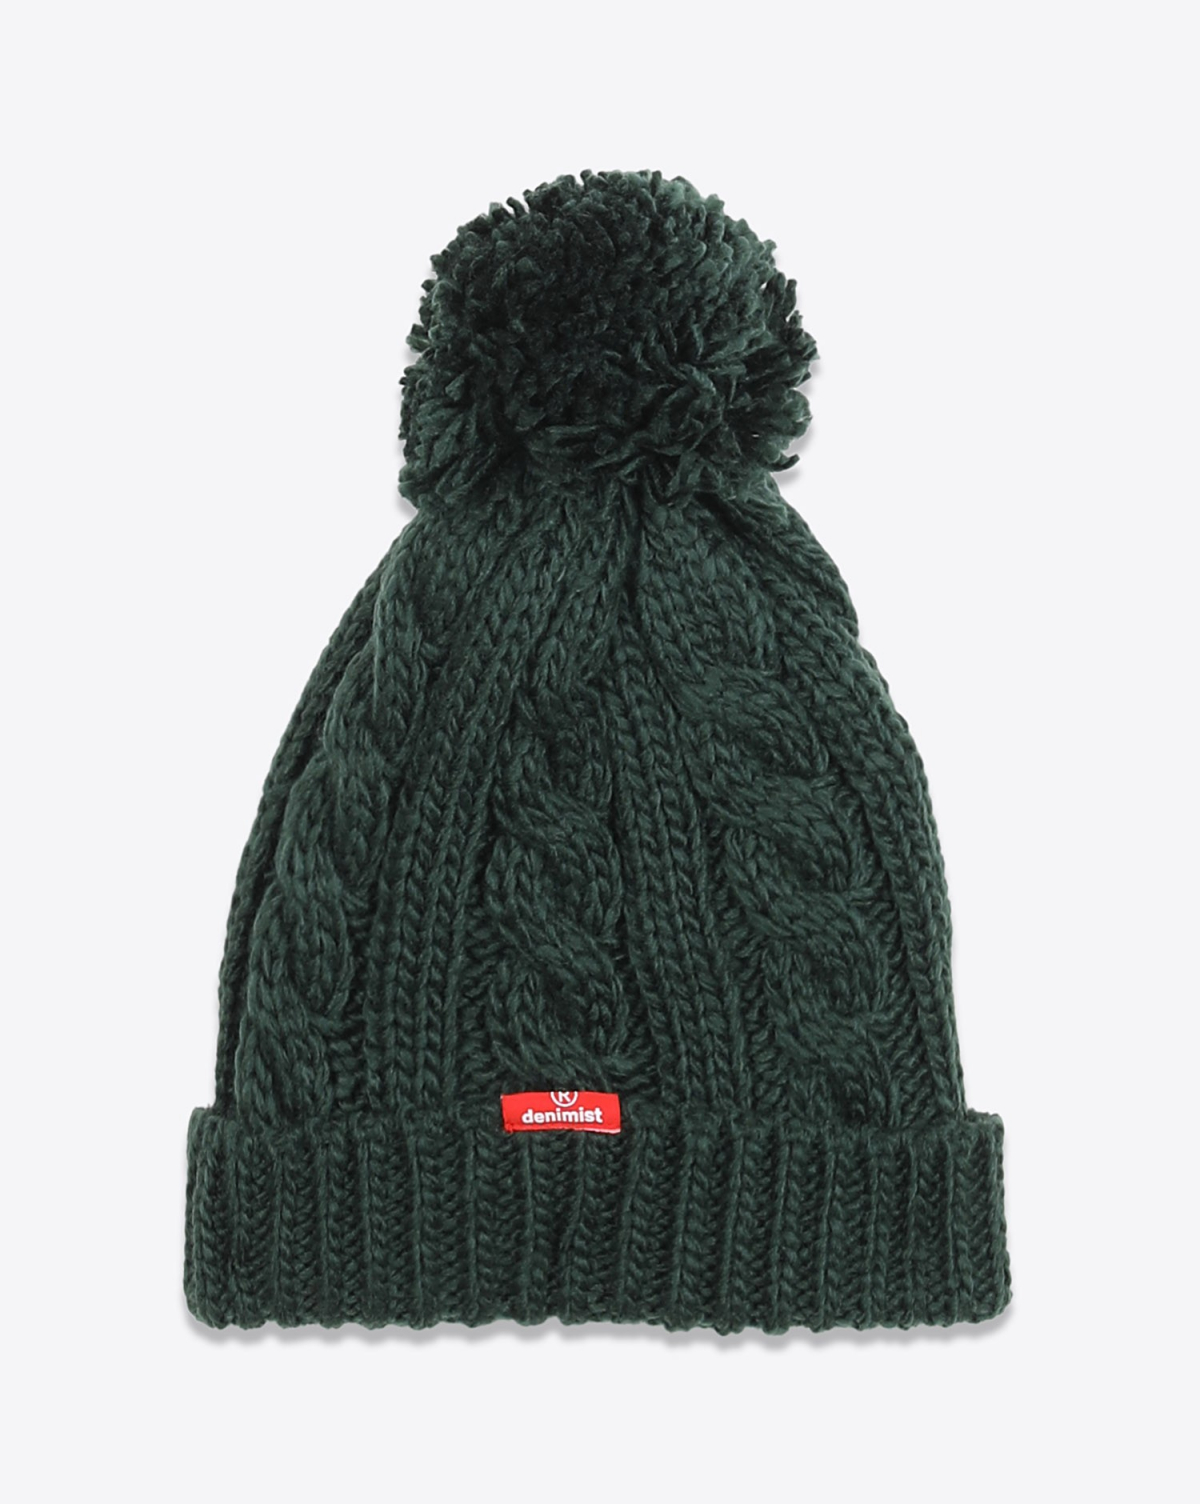 Denimist Pompom Beanie - Forest Green